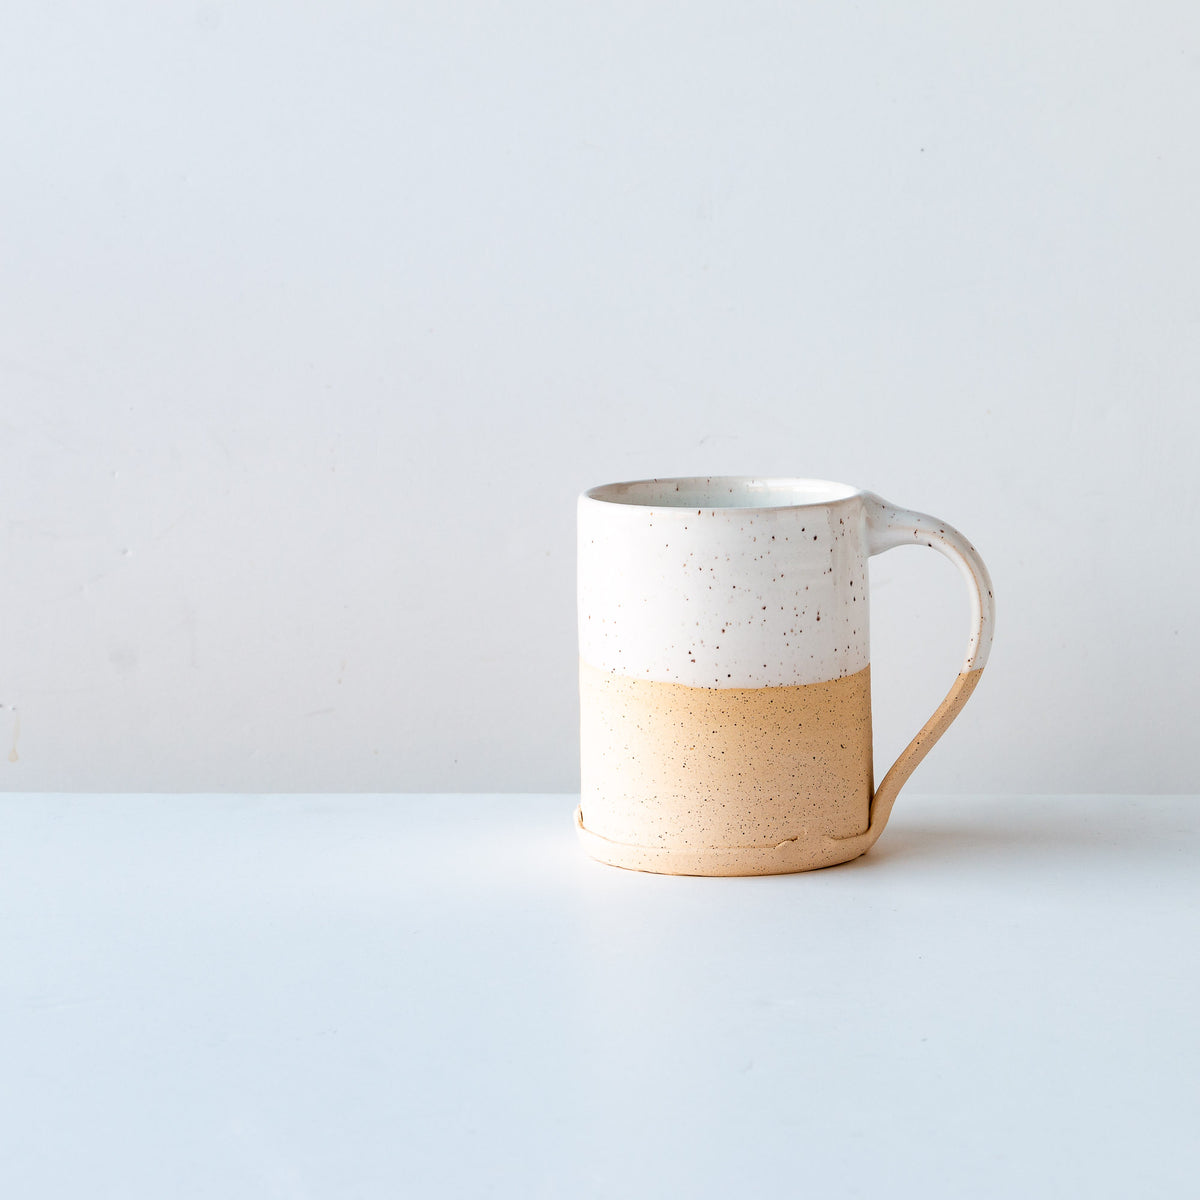 White Glaze - Handcrafted Speckled Stoneware Large Mug - Sold by Chic & Basta